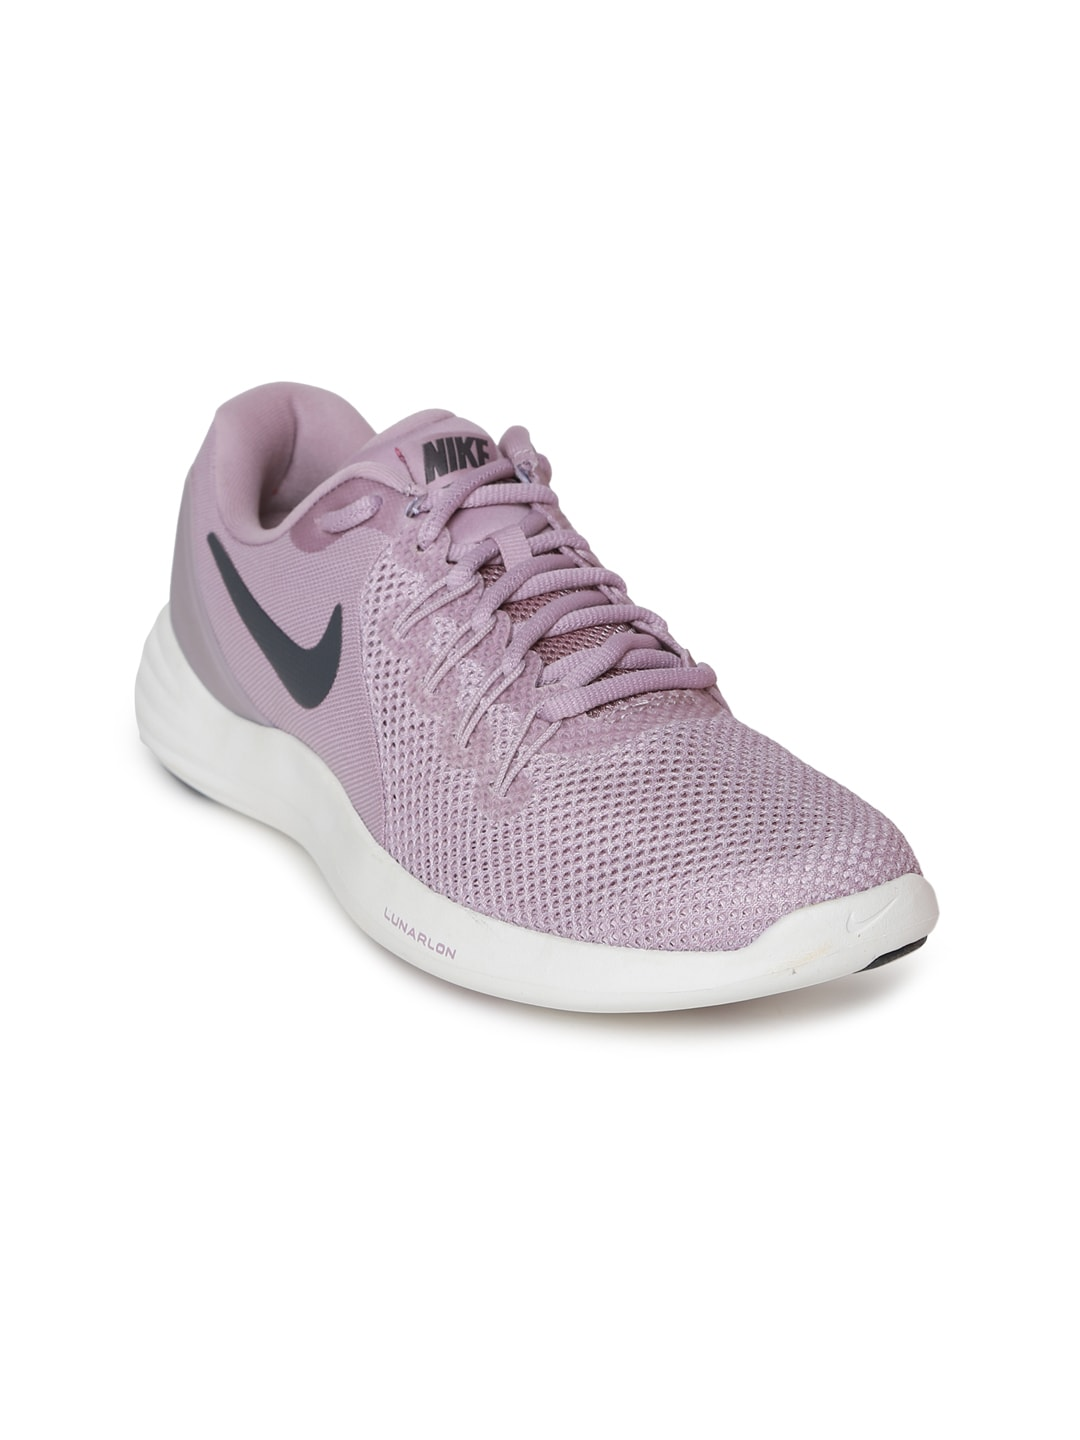 a2ad28b00eed Buy Nike Women Pink NIKE FLEX TRAINER 8 Training Shoes - Sports ...